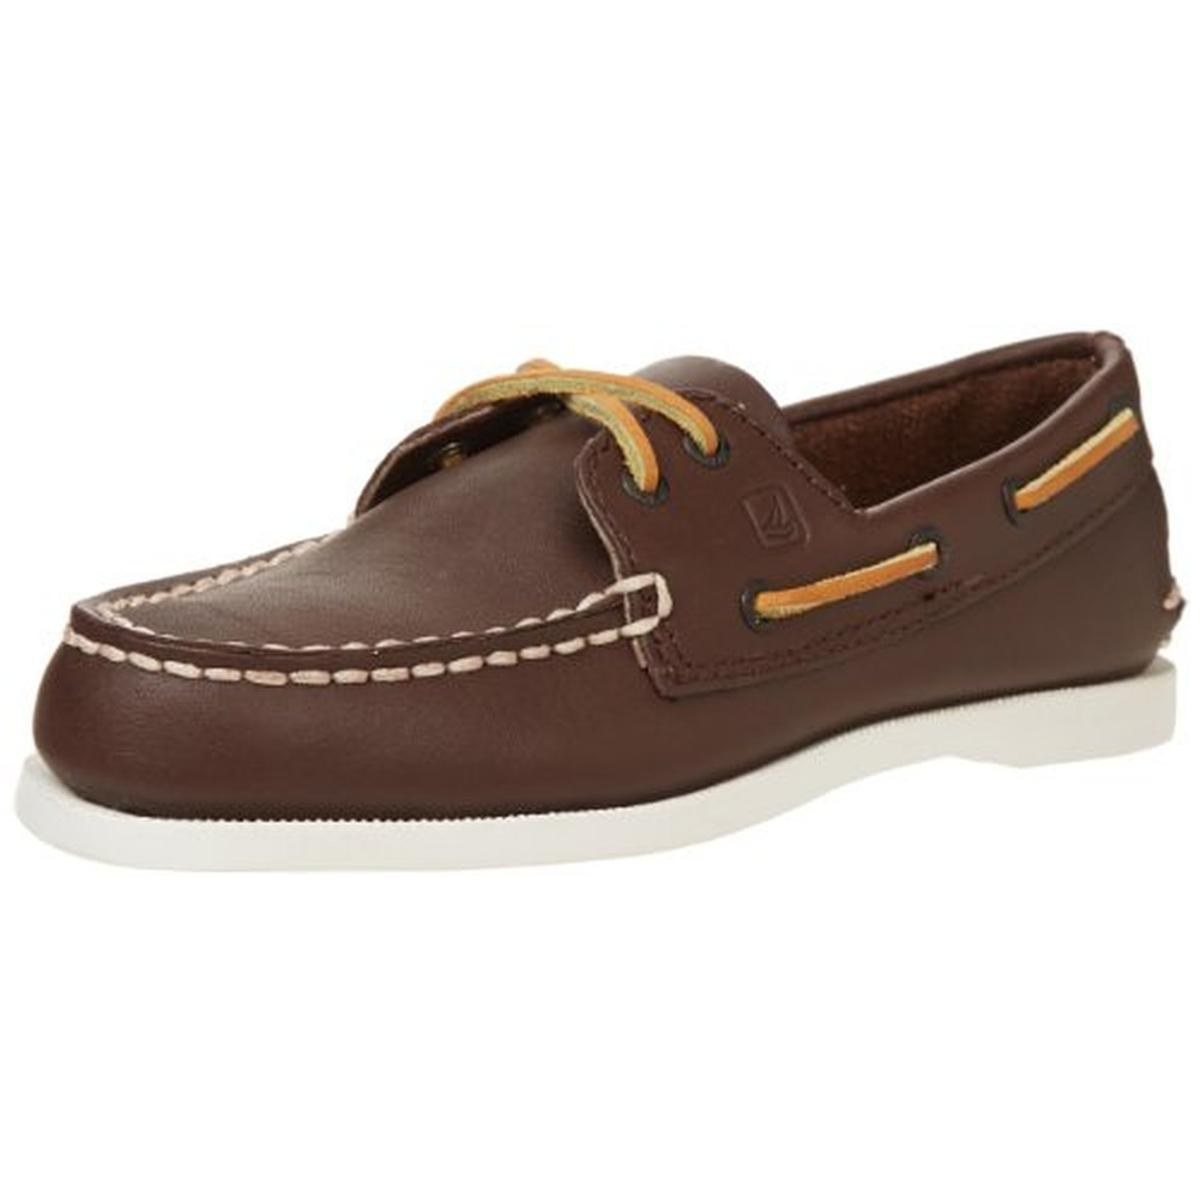 Sperry 0504 Brown Leather Toddler Boys Boat Shoes Sneakers